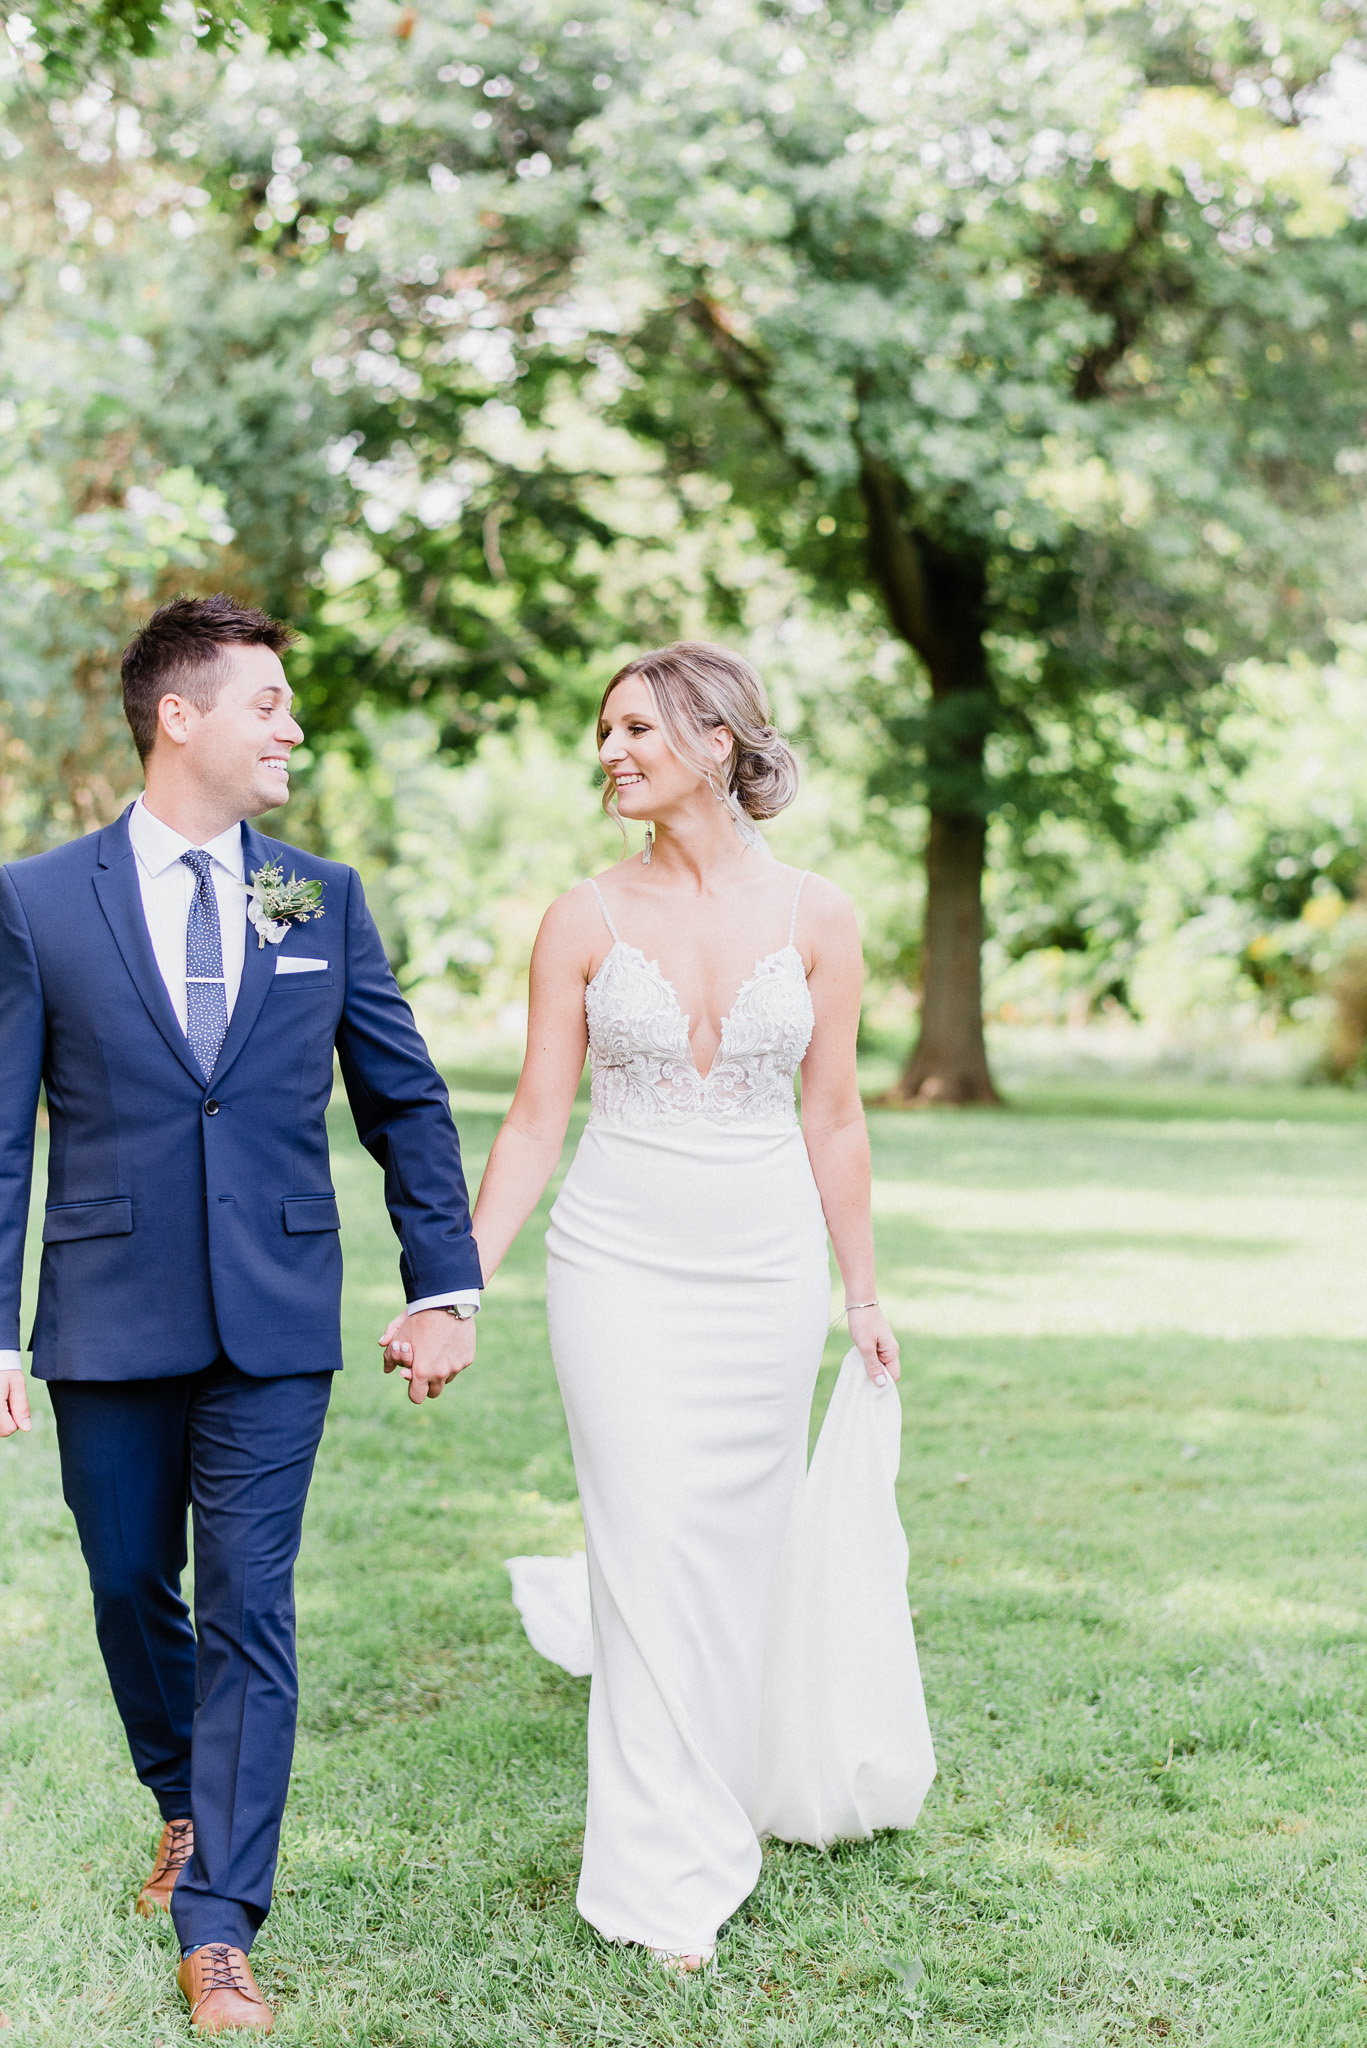 Shell Park, Oakville wedding photos by Jenn Kavanagh Photography